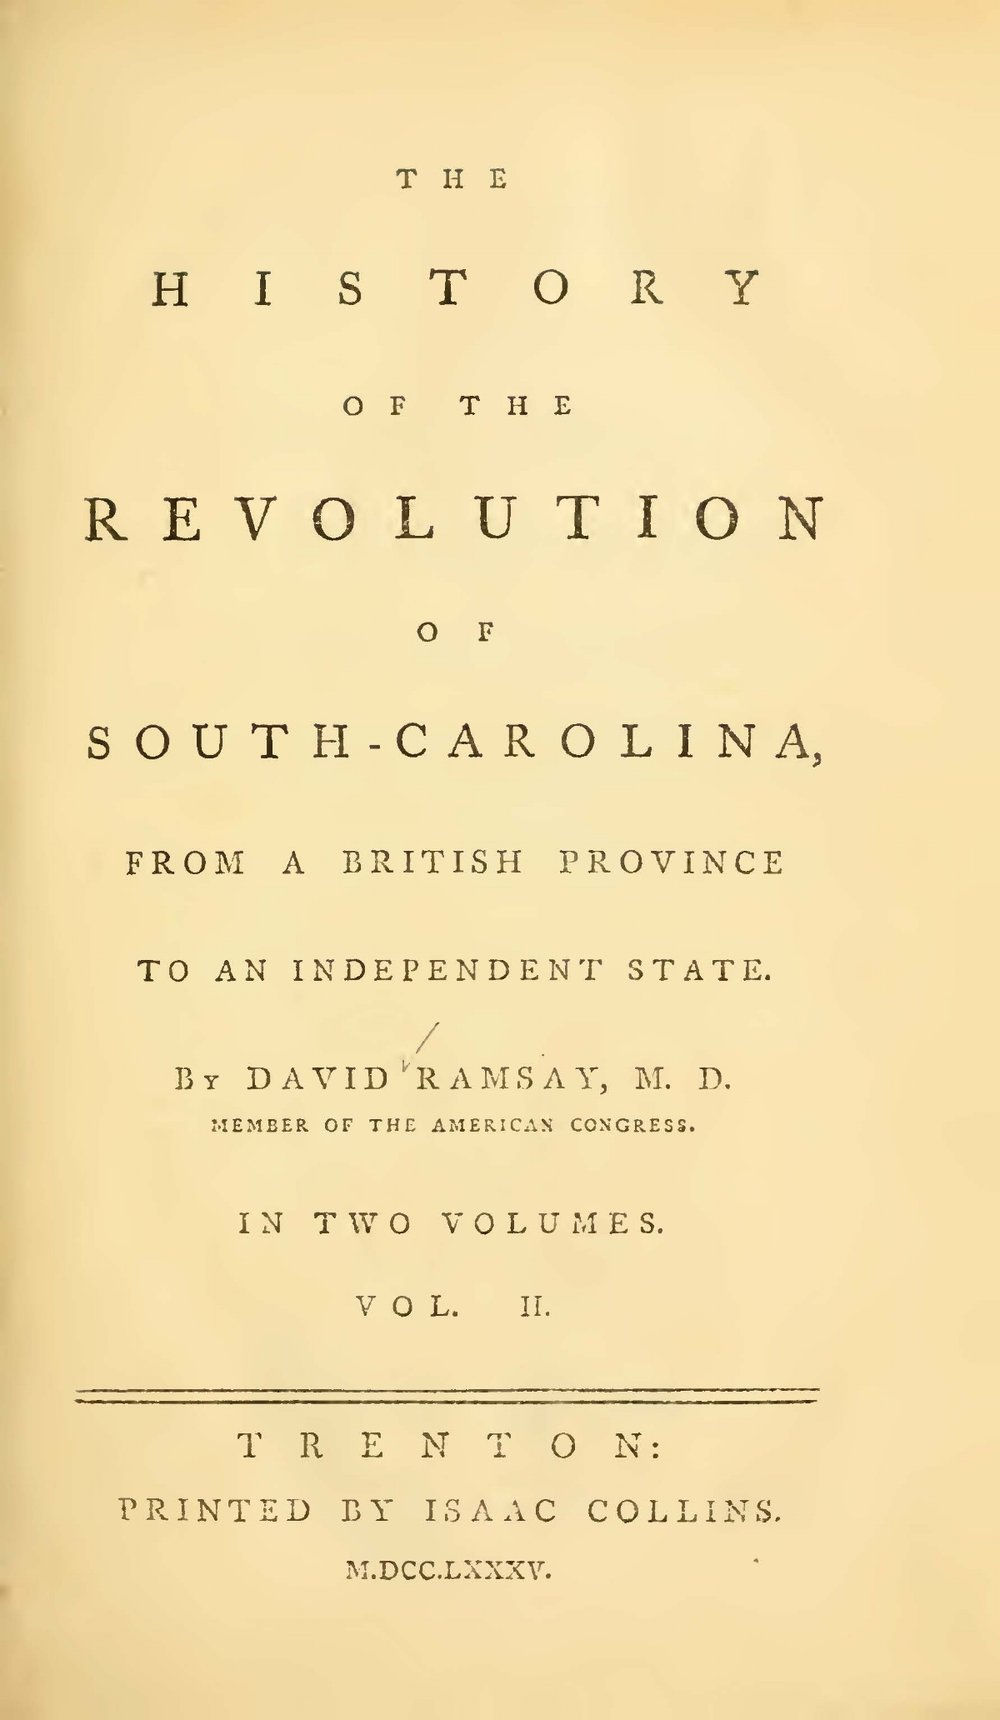 Ramsay, David, The History of the Revolution of South Carolina, Vol. 2 Title Page.jpg